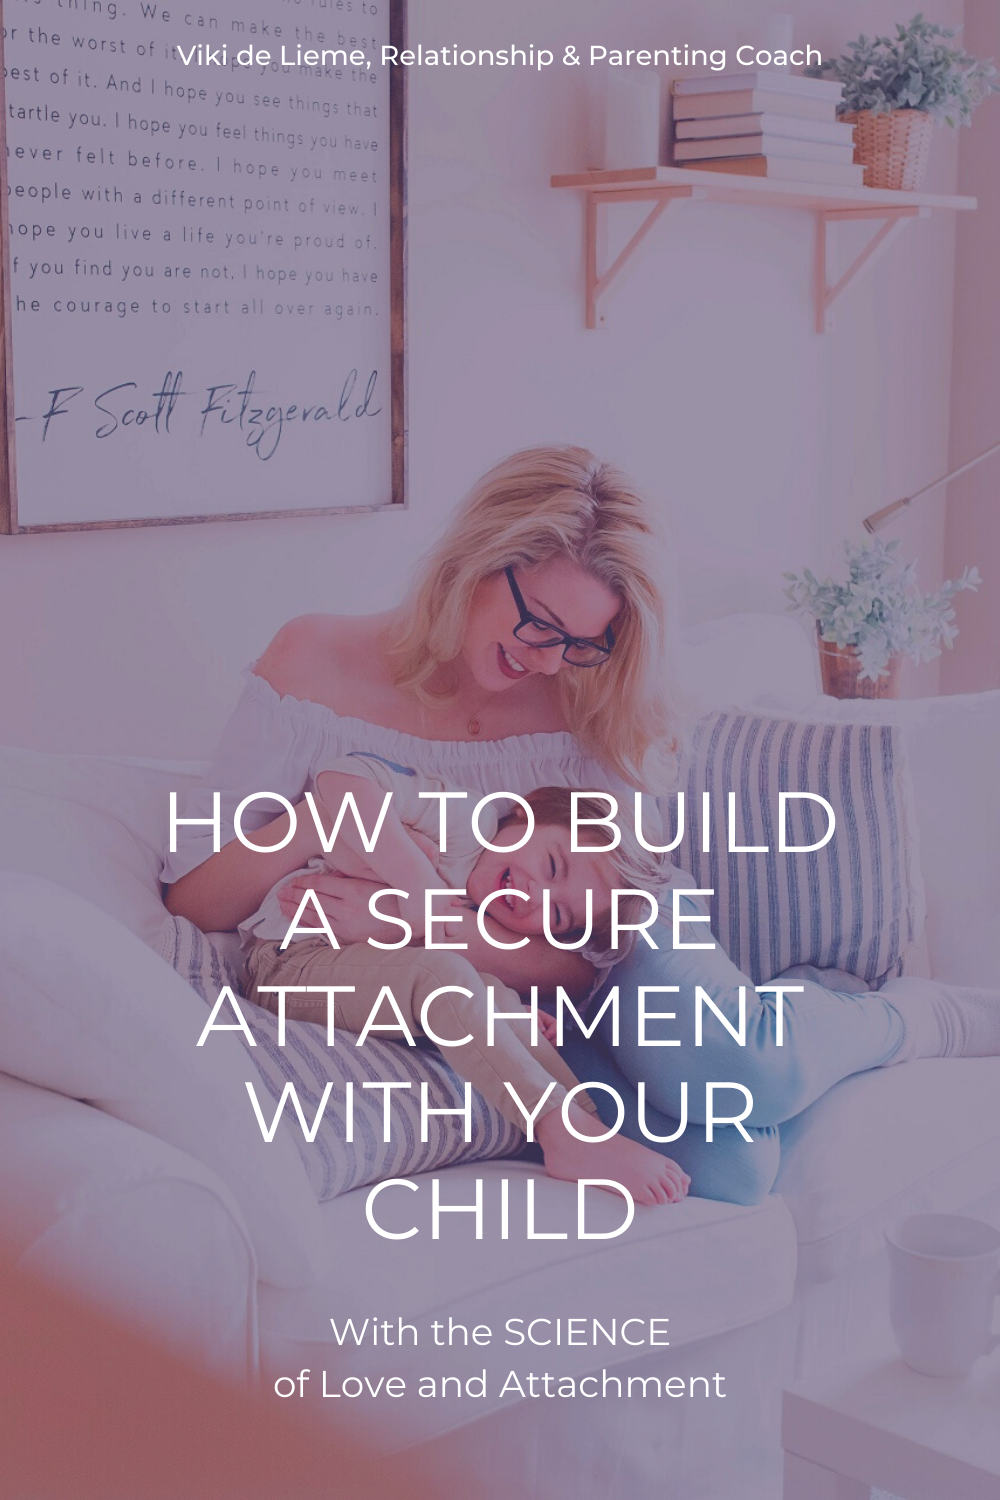 The Science of Love and Attachment - six steps to building unbreakable bonds with your children from birth to adolescence #attachment #secureattachment #attachmentparenting #attachmenttheory #parenting